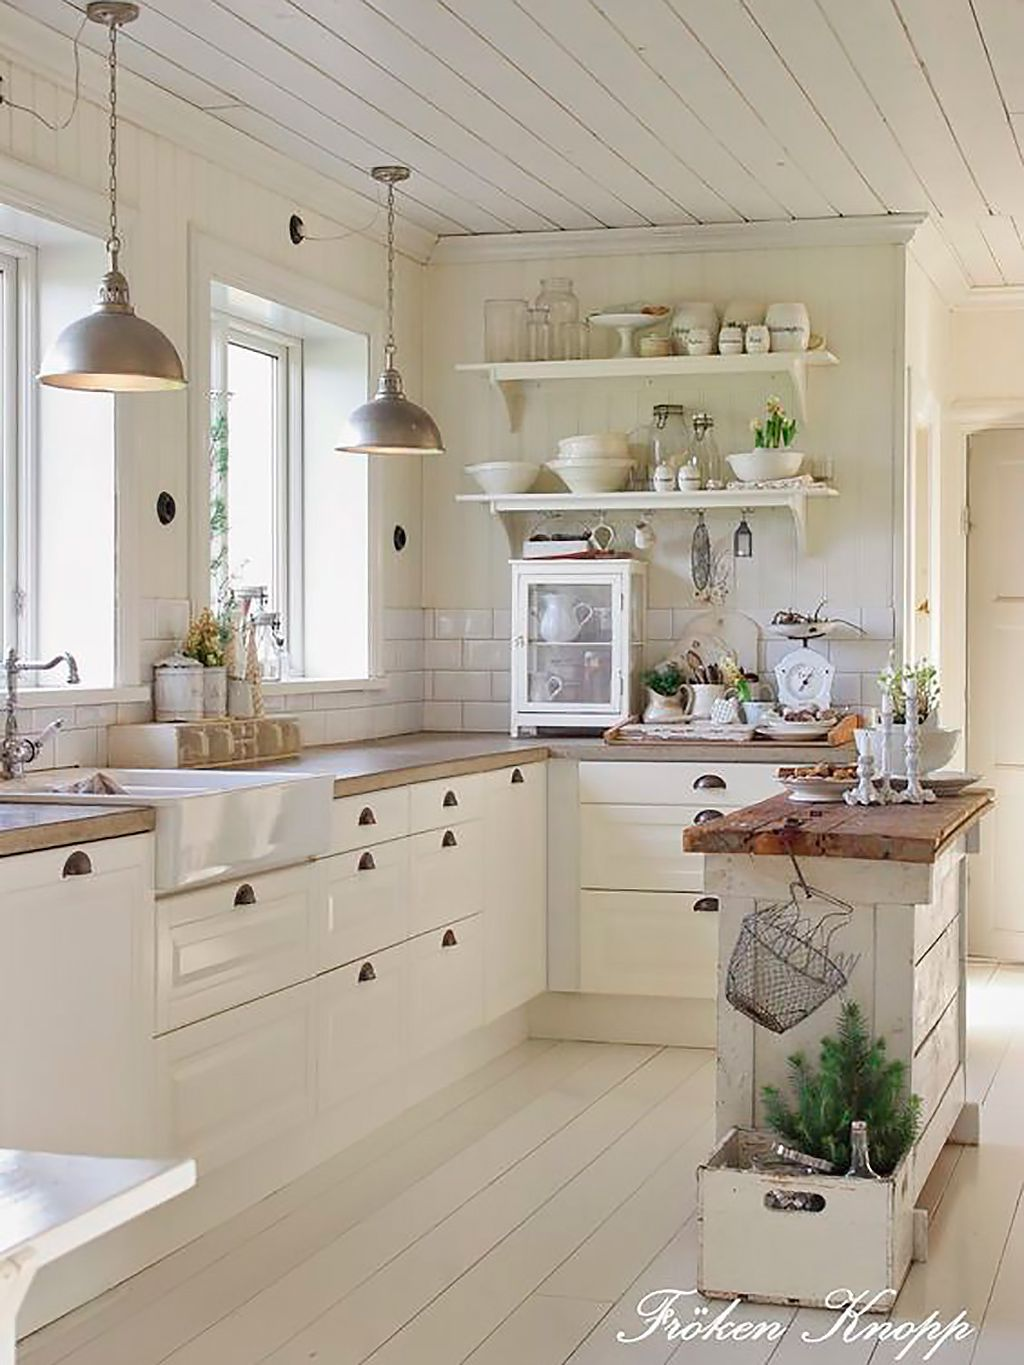 4 of This Years Hottest Kitchen Trends (and 3 Tired Fads)